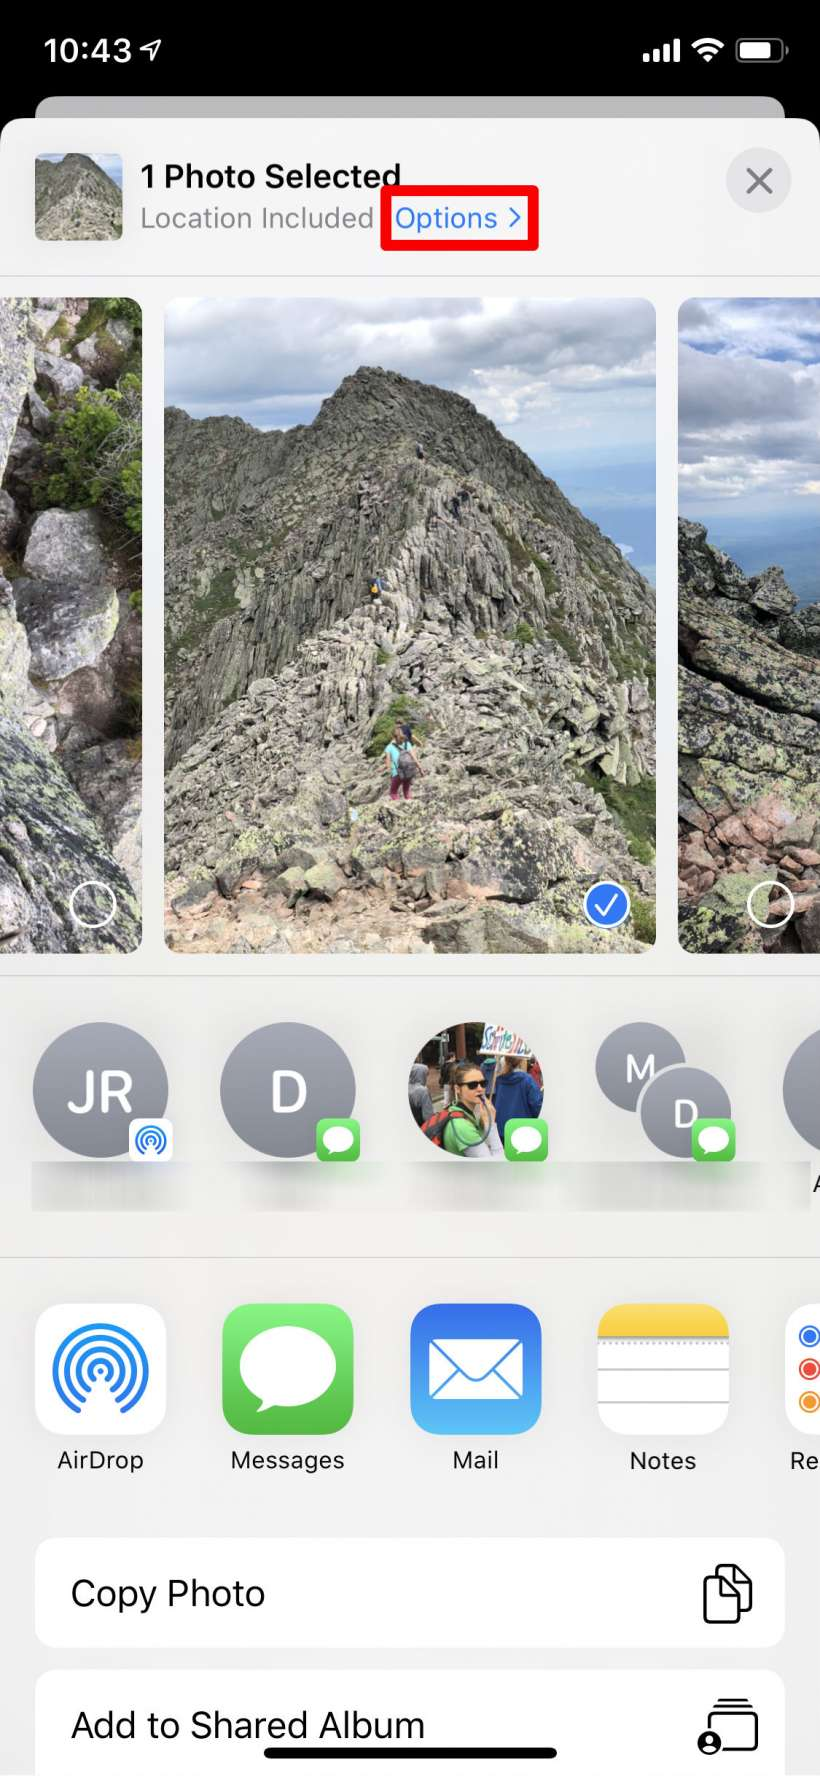 How to send photos without location data on iPhone and iPad.